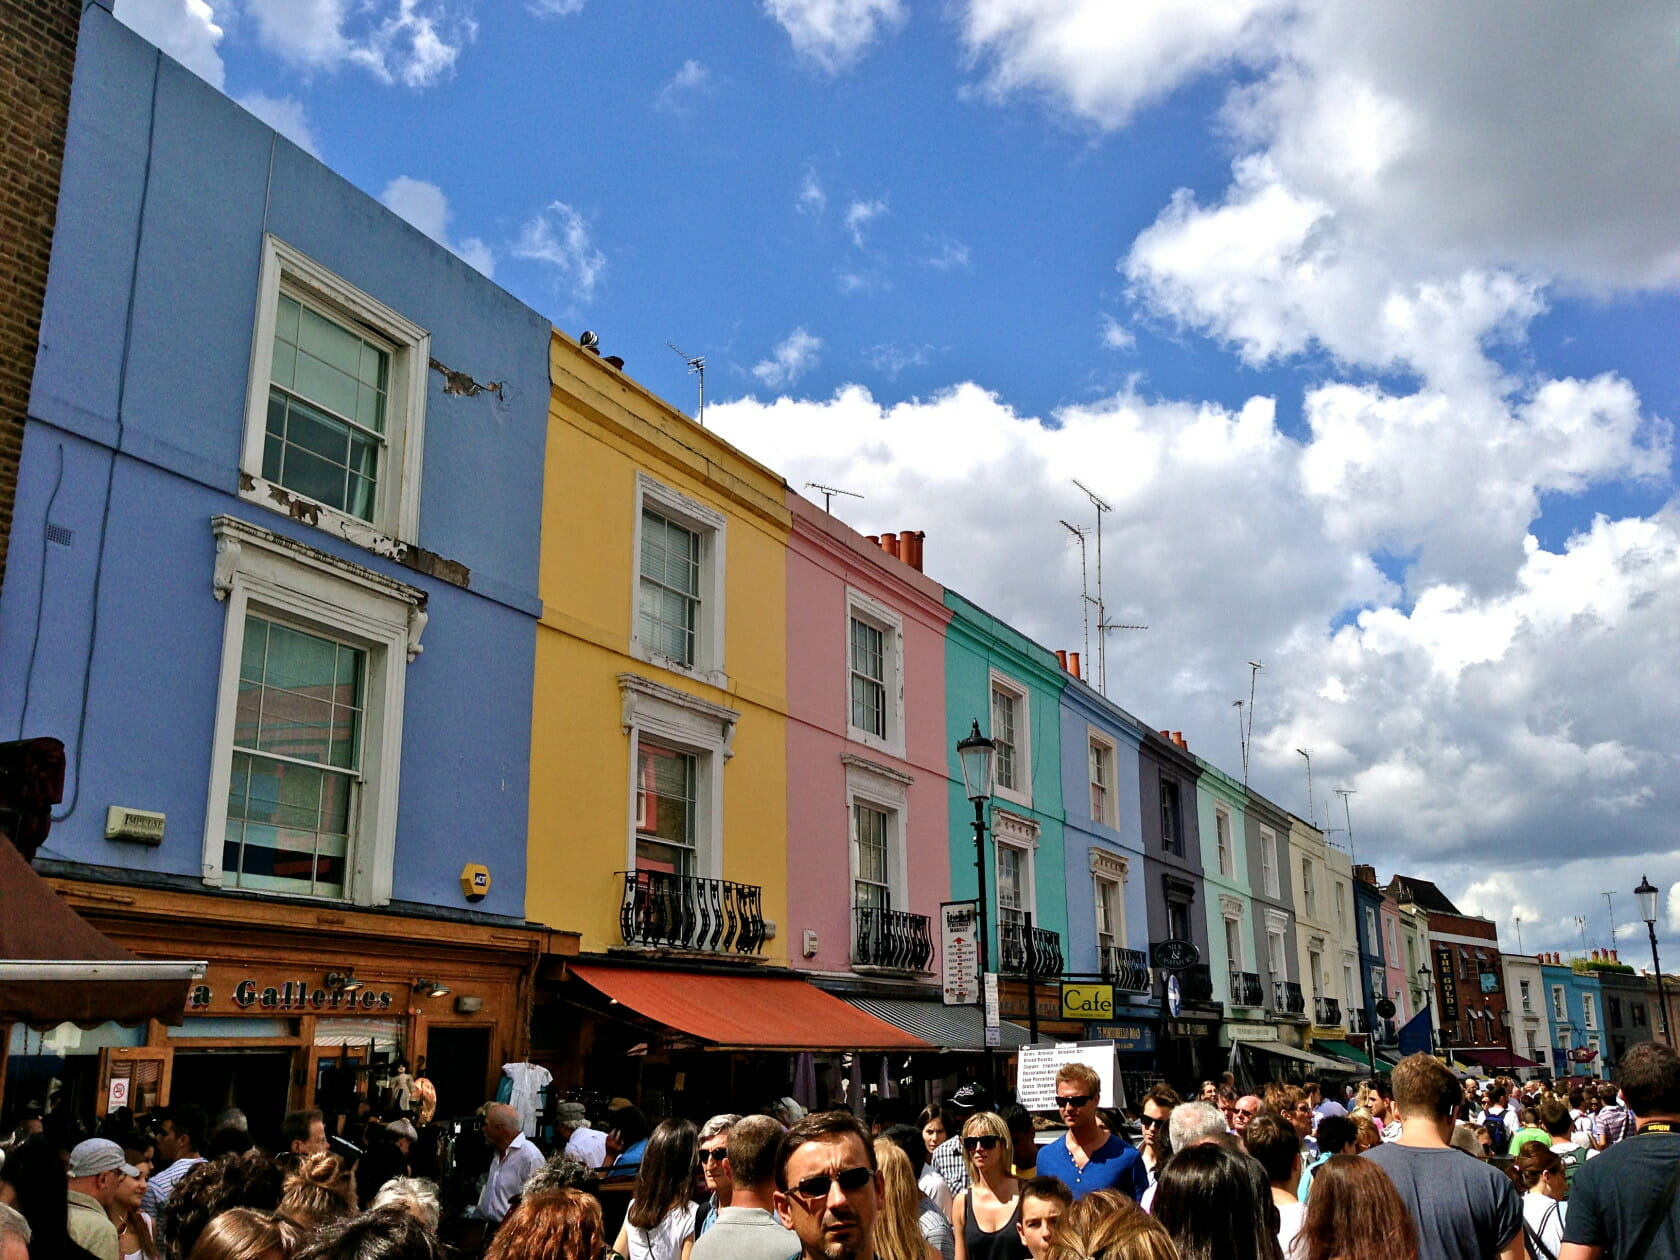 notting hill england london differences between england and America